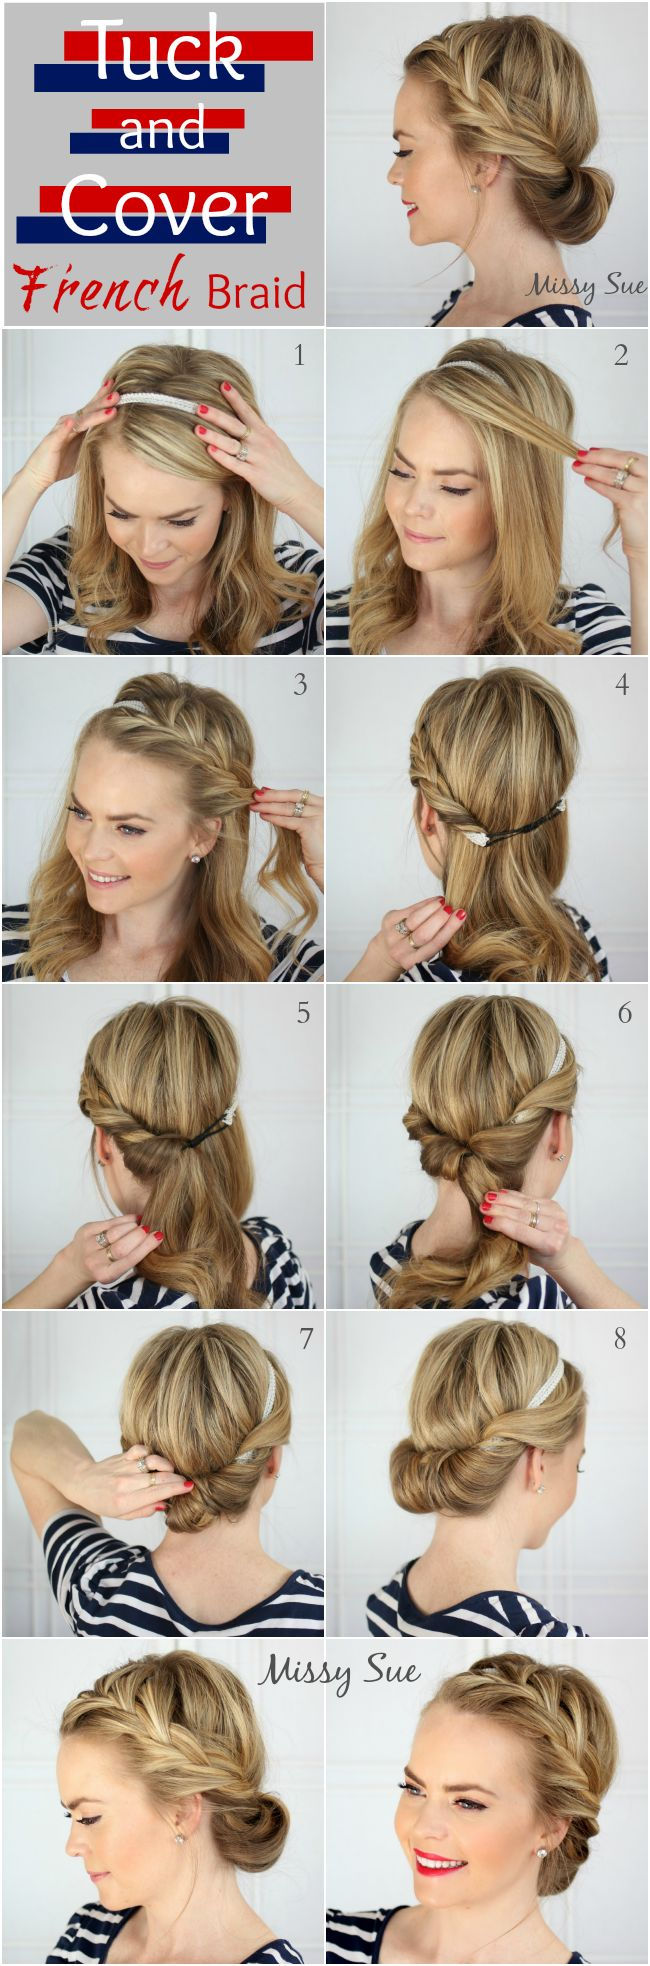 276 best hairstyles for medium length hair images on pinterest braid 7 tuck and cover french braid solutioingenieria Image collections